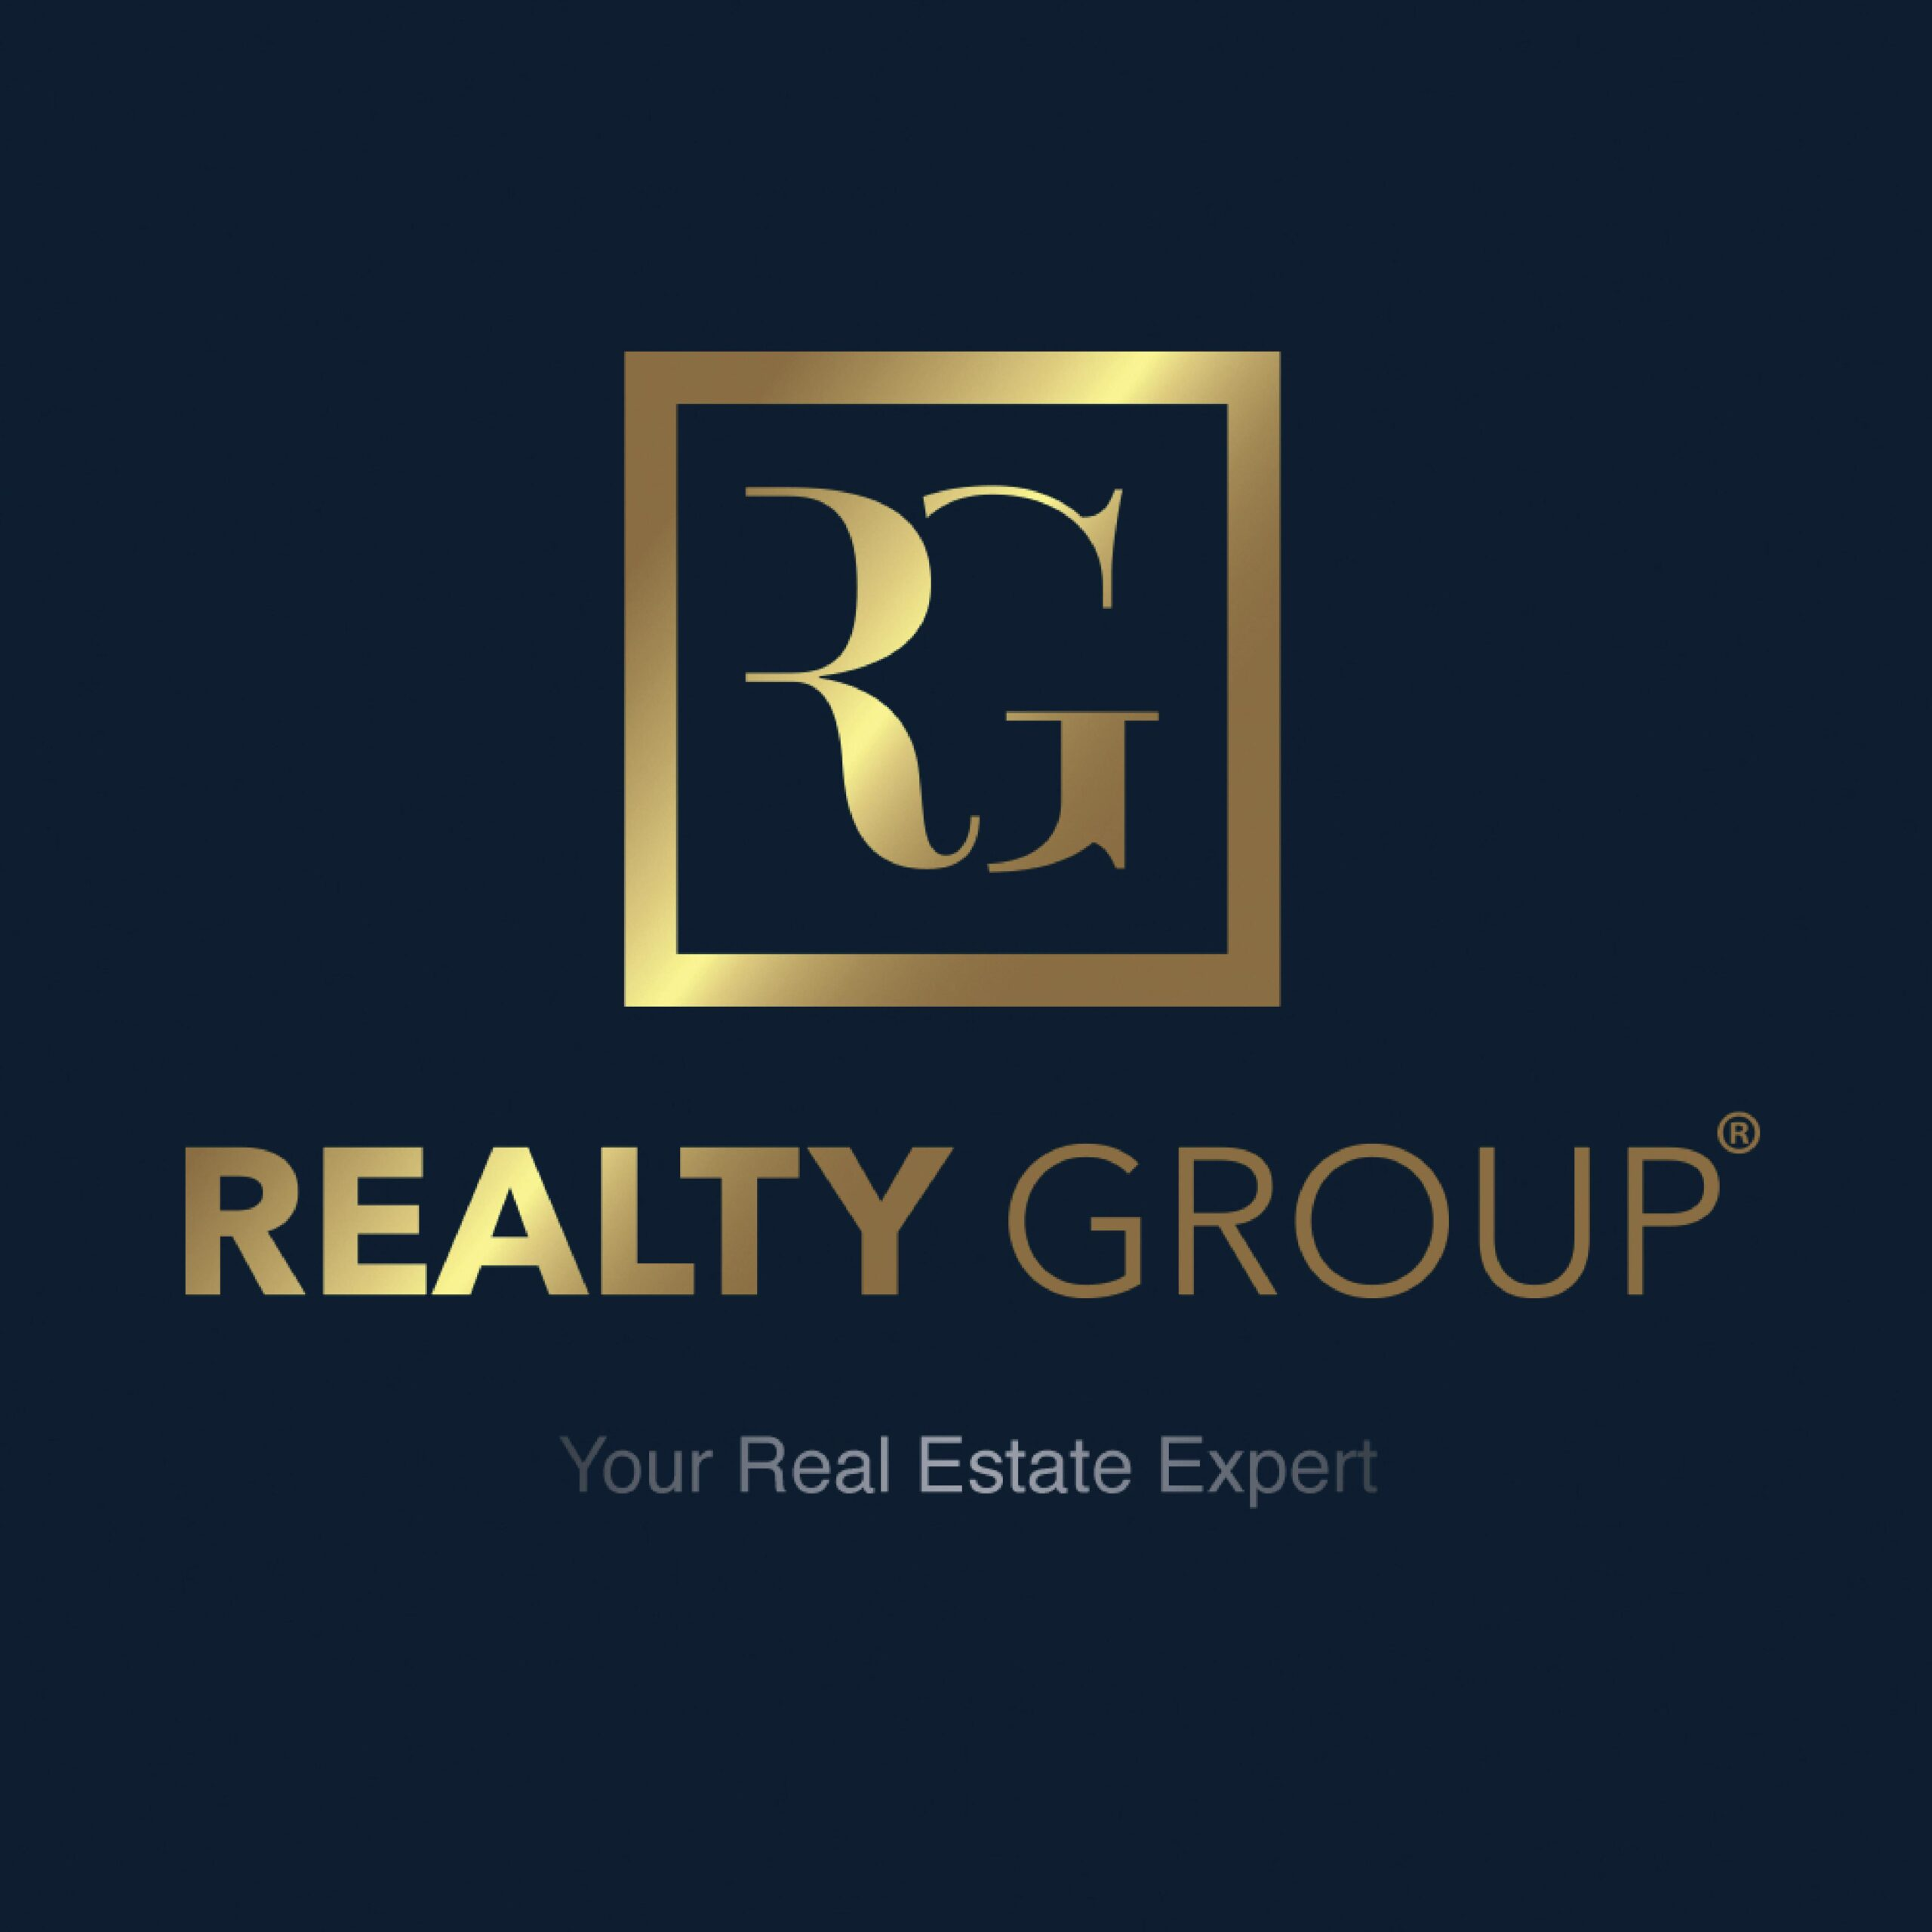 36 - REALTY GROUP